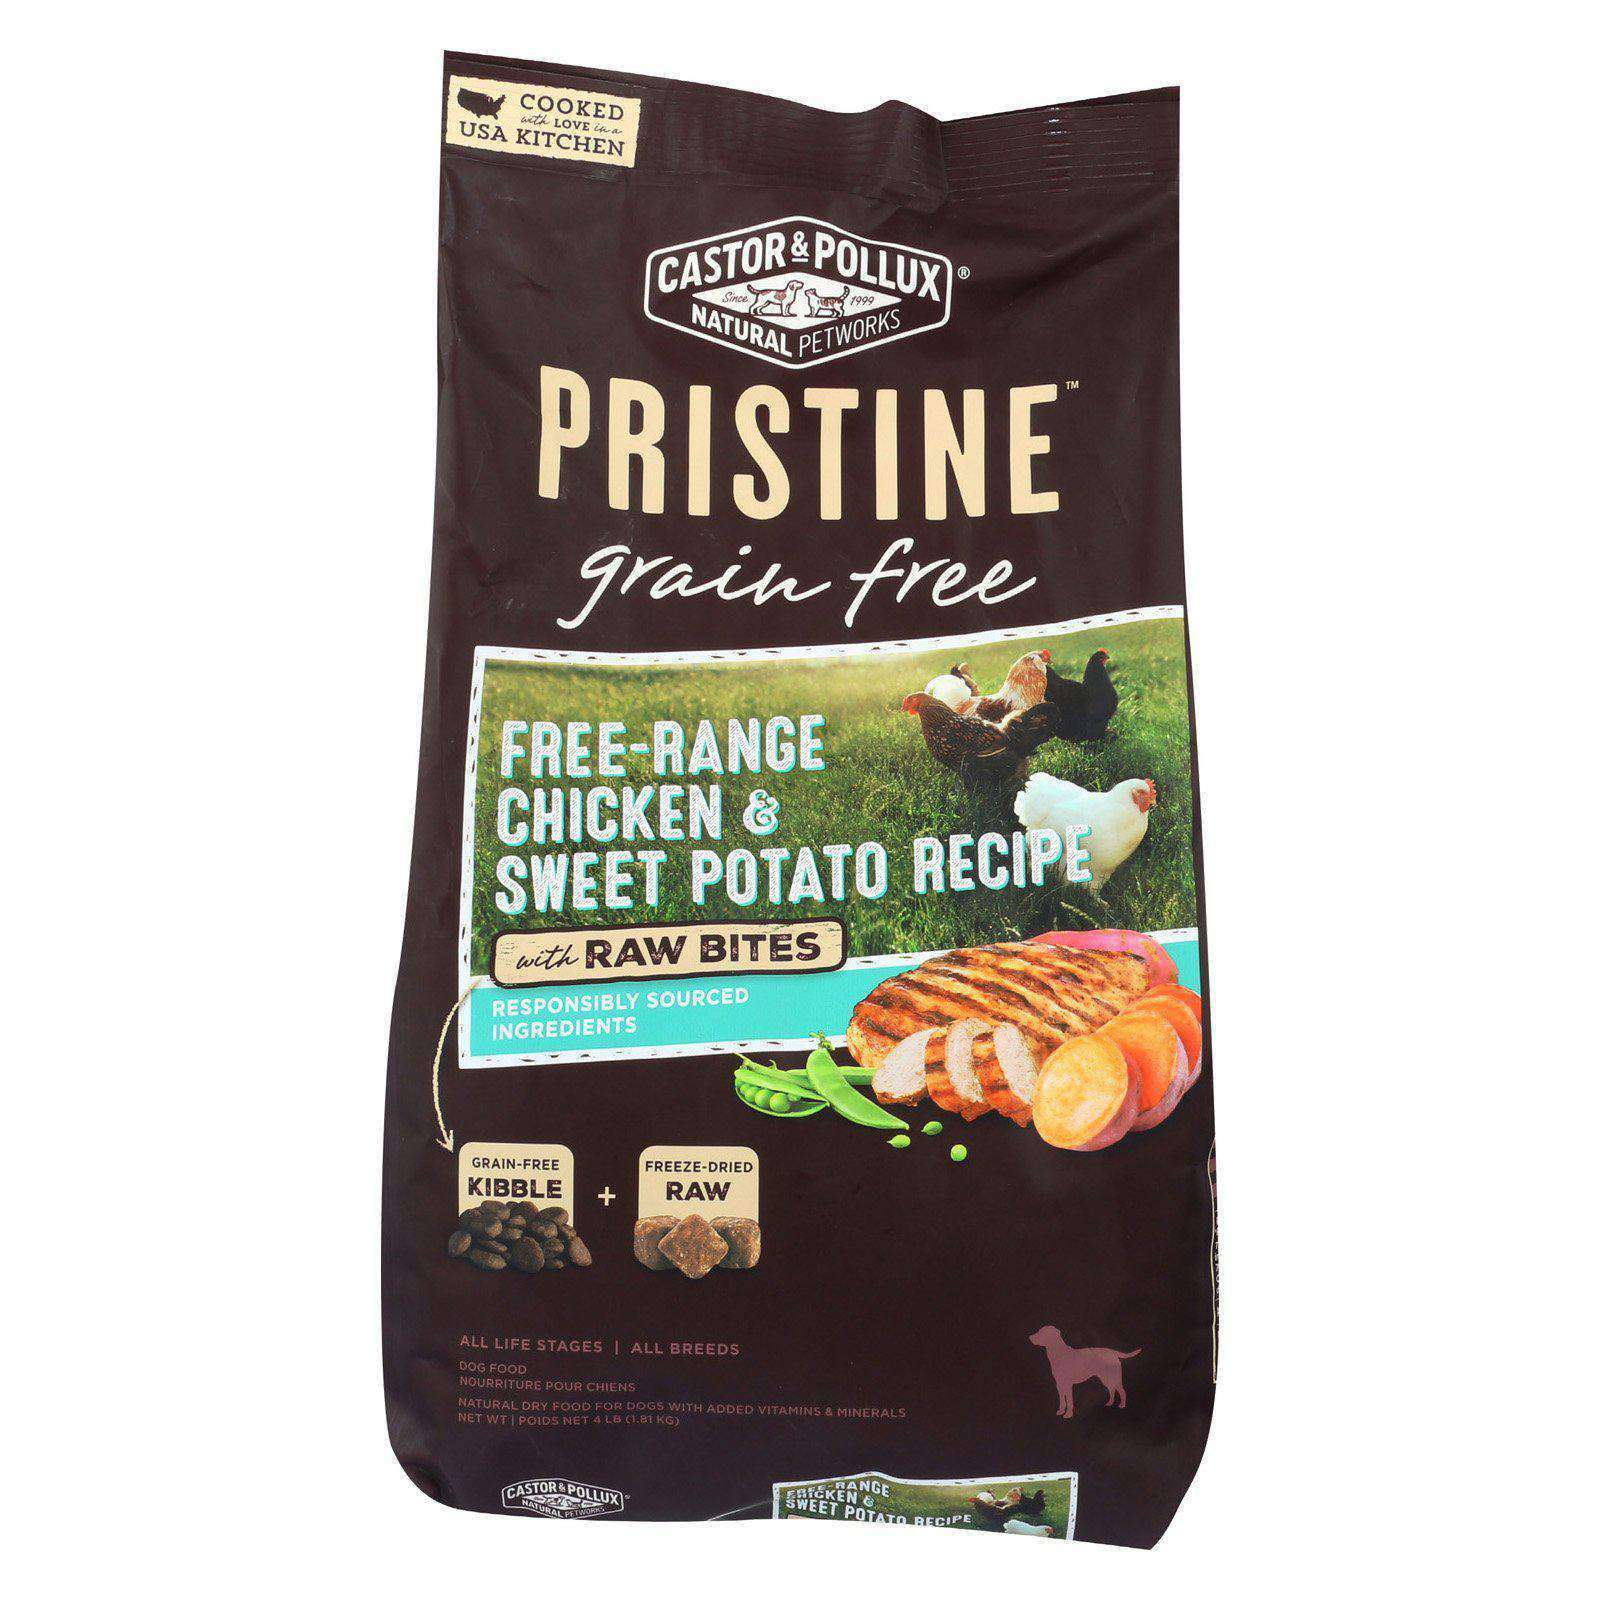 Castor And Pollux Pristine Grain Free Dry Dog Food - Chicken & Sweet Potato - Case Of 5 - 4 Lb.-Castor and Pollux-DirtyFurClothing